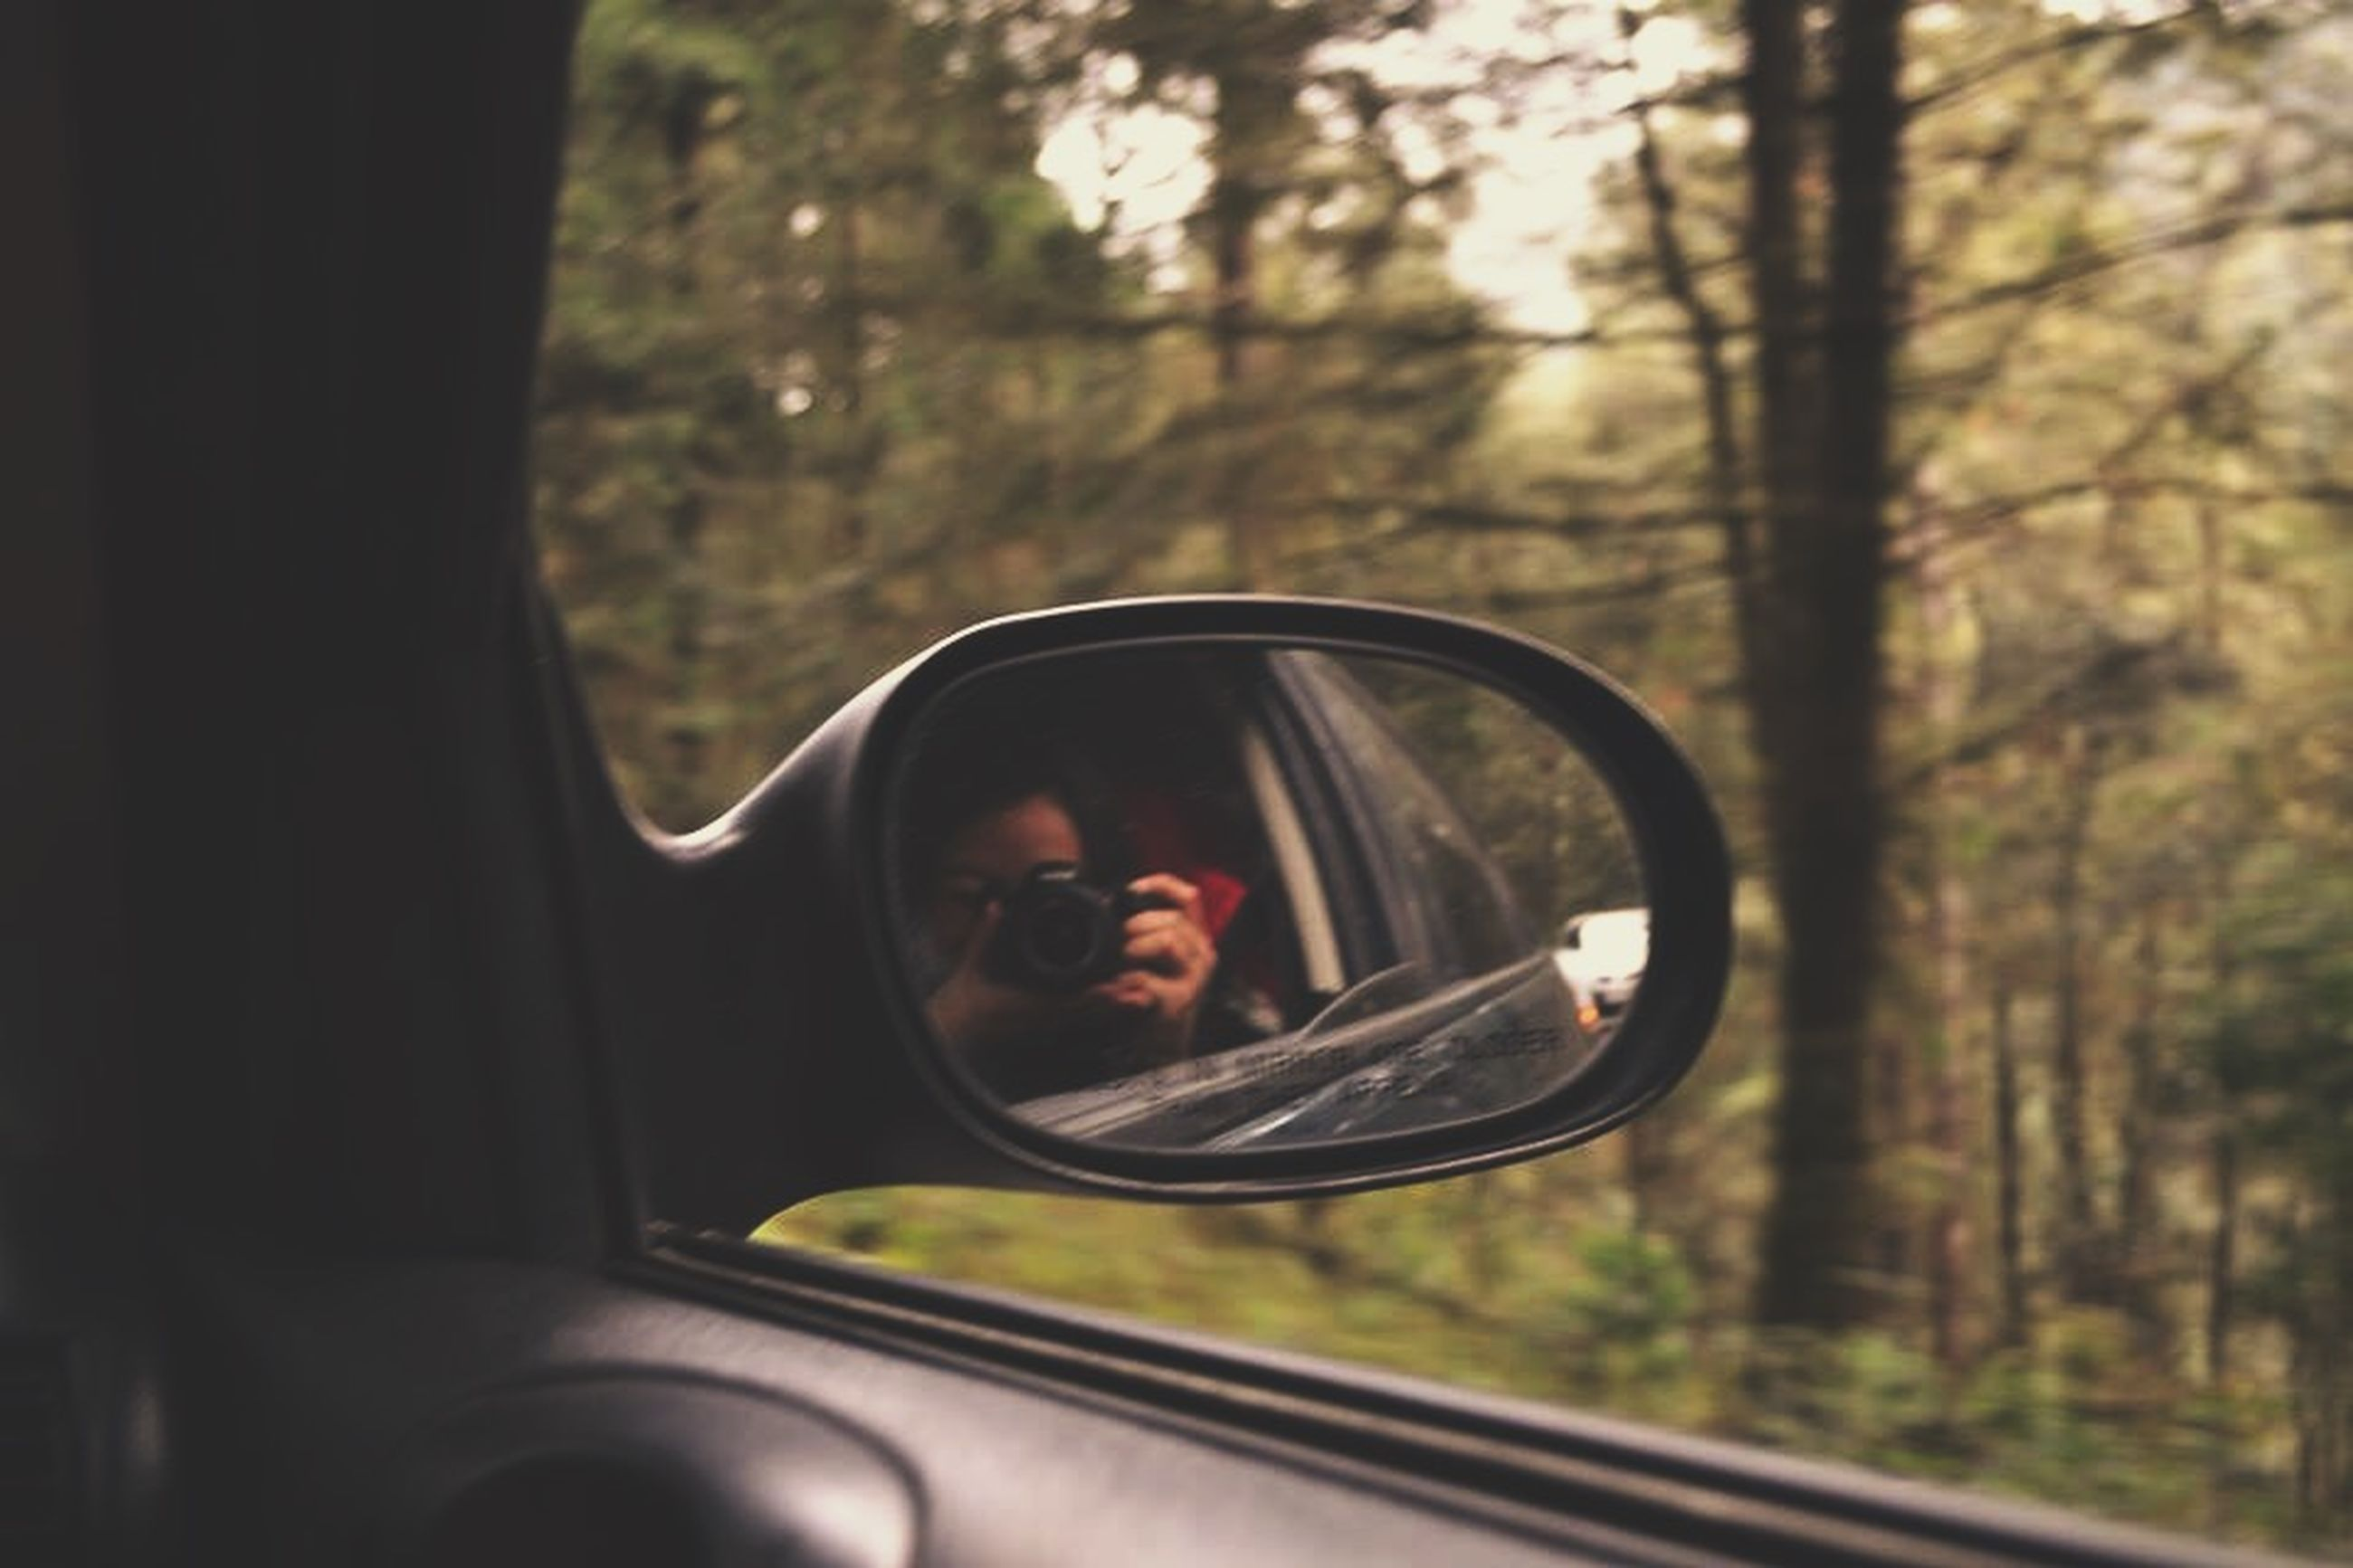 transportation, tree, lifestyles, leisure activity, reflection, mode of transport, car, young adult, sunglasses, land vehicle, window, vehicle interior, transparent, glass - material, person, travel, headshot, looking at camera